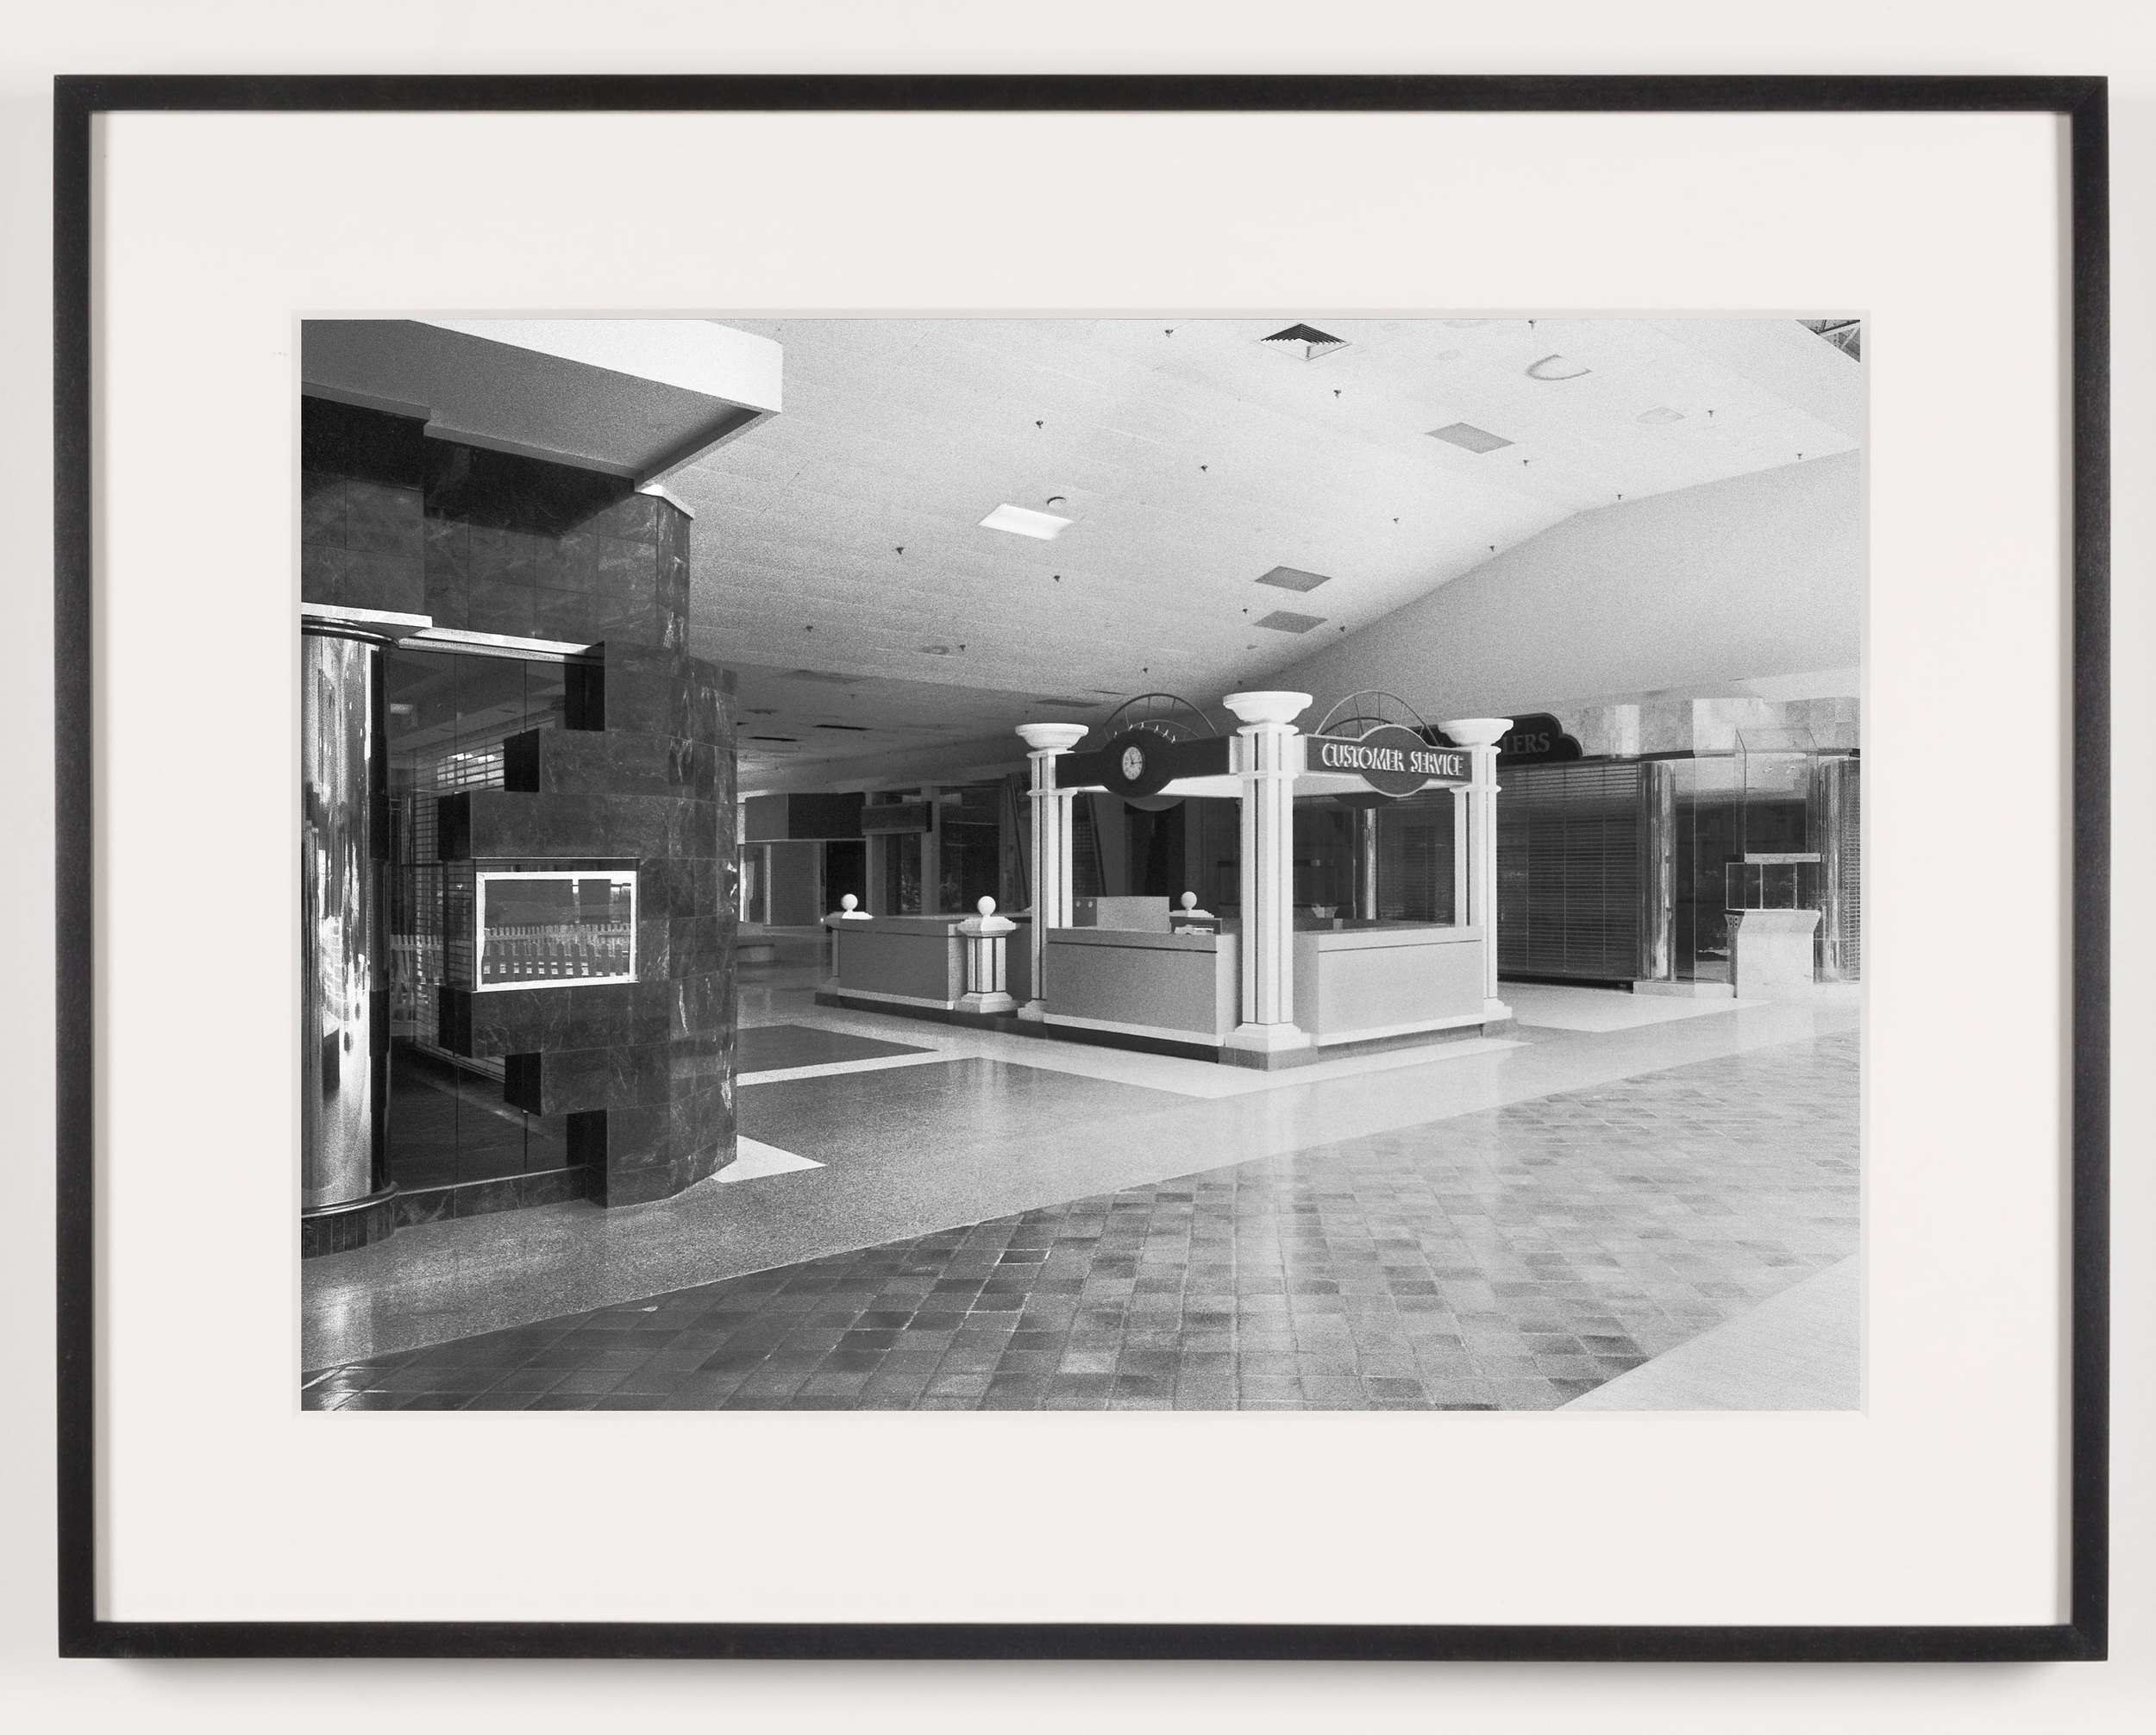 Rolling Acres Mall (View of Customer Service Kiosk), Akron, OH, Est. 1975    2011   Epson Ultrachrome K3 archival ink jet print on Hahnemühle Photo Rag paper  21 5/8 x 28 1/8 inches   American Passages, 2001–2011